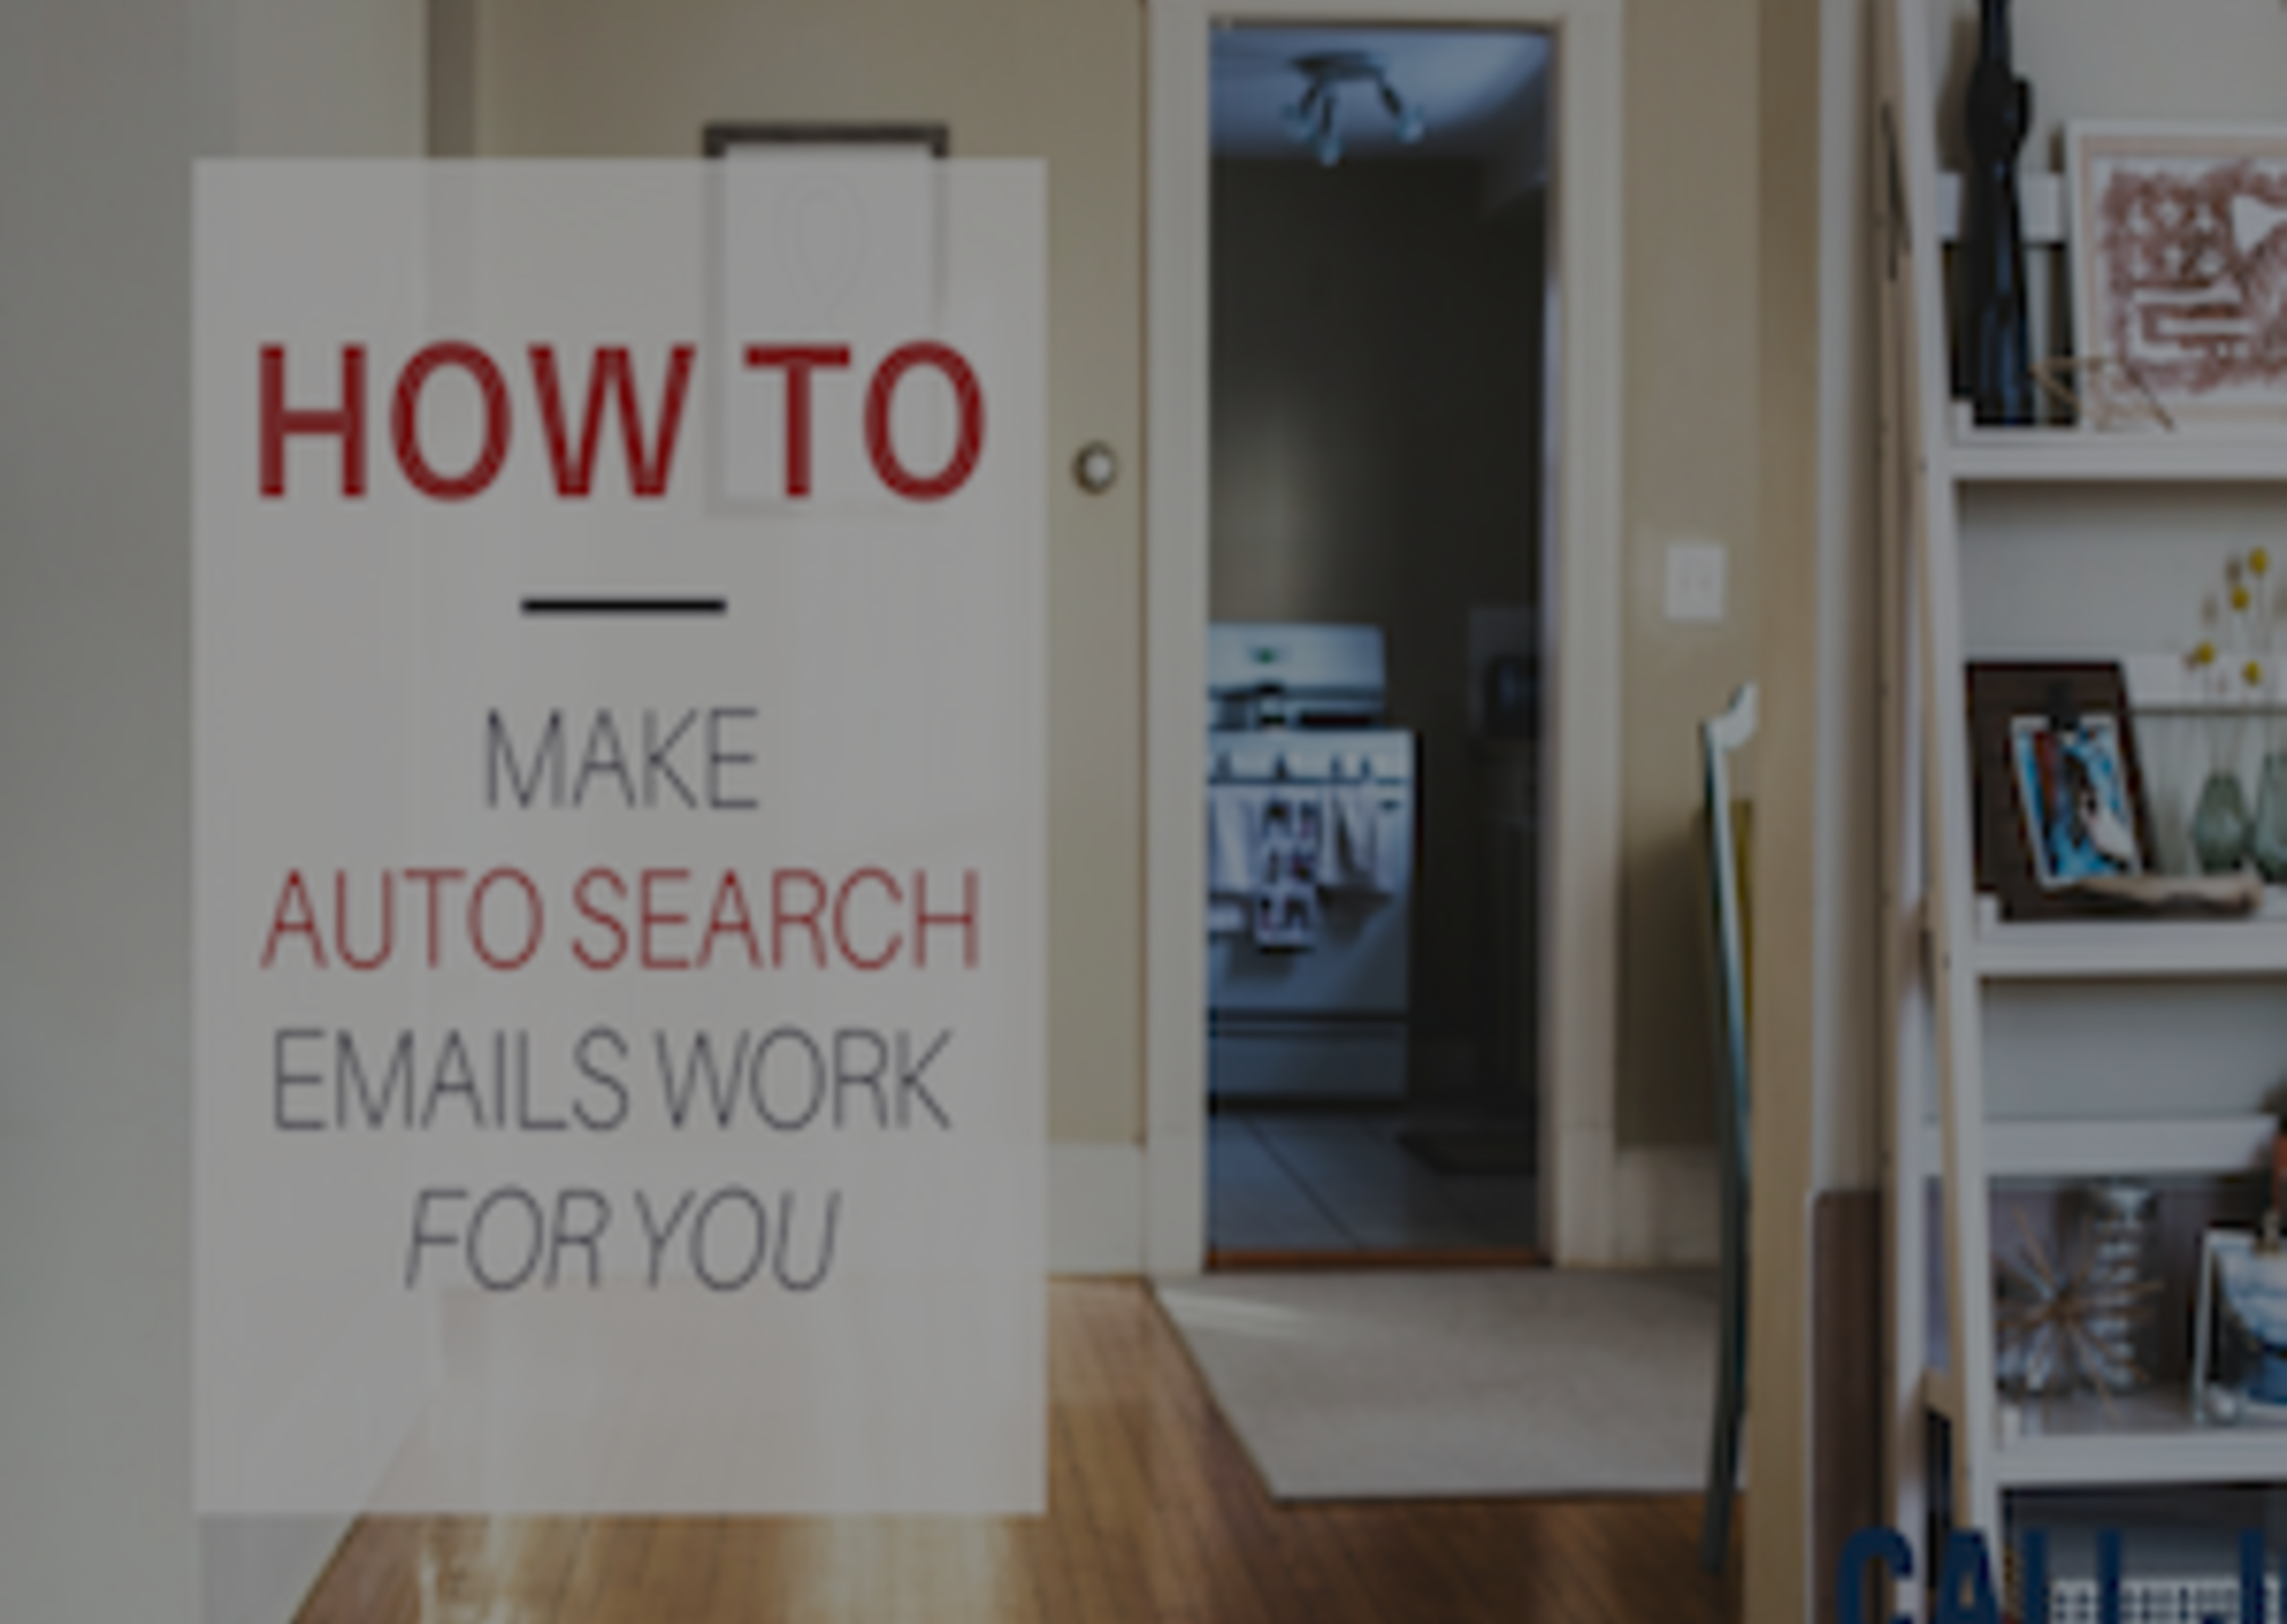 ​How To Make Auto-Search Emails Work for You